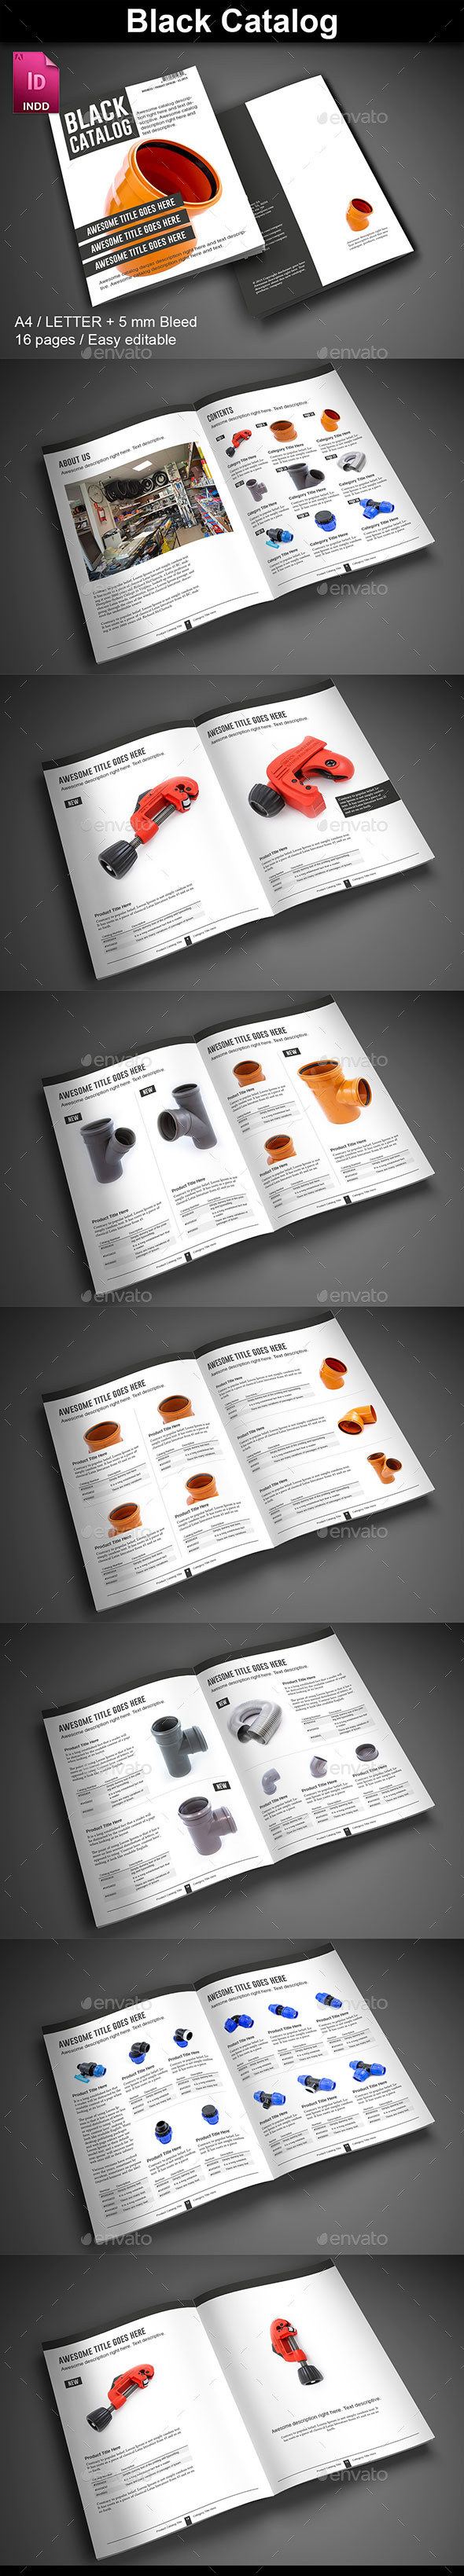 Black Catalog - Catalogs Brochures